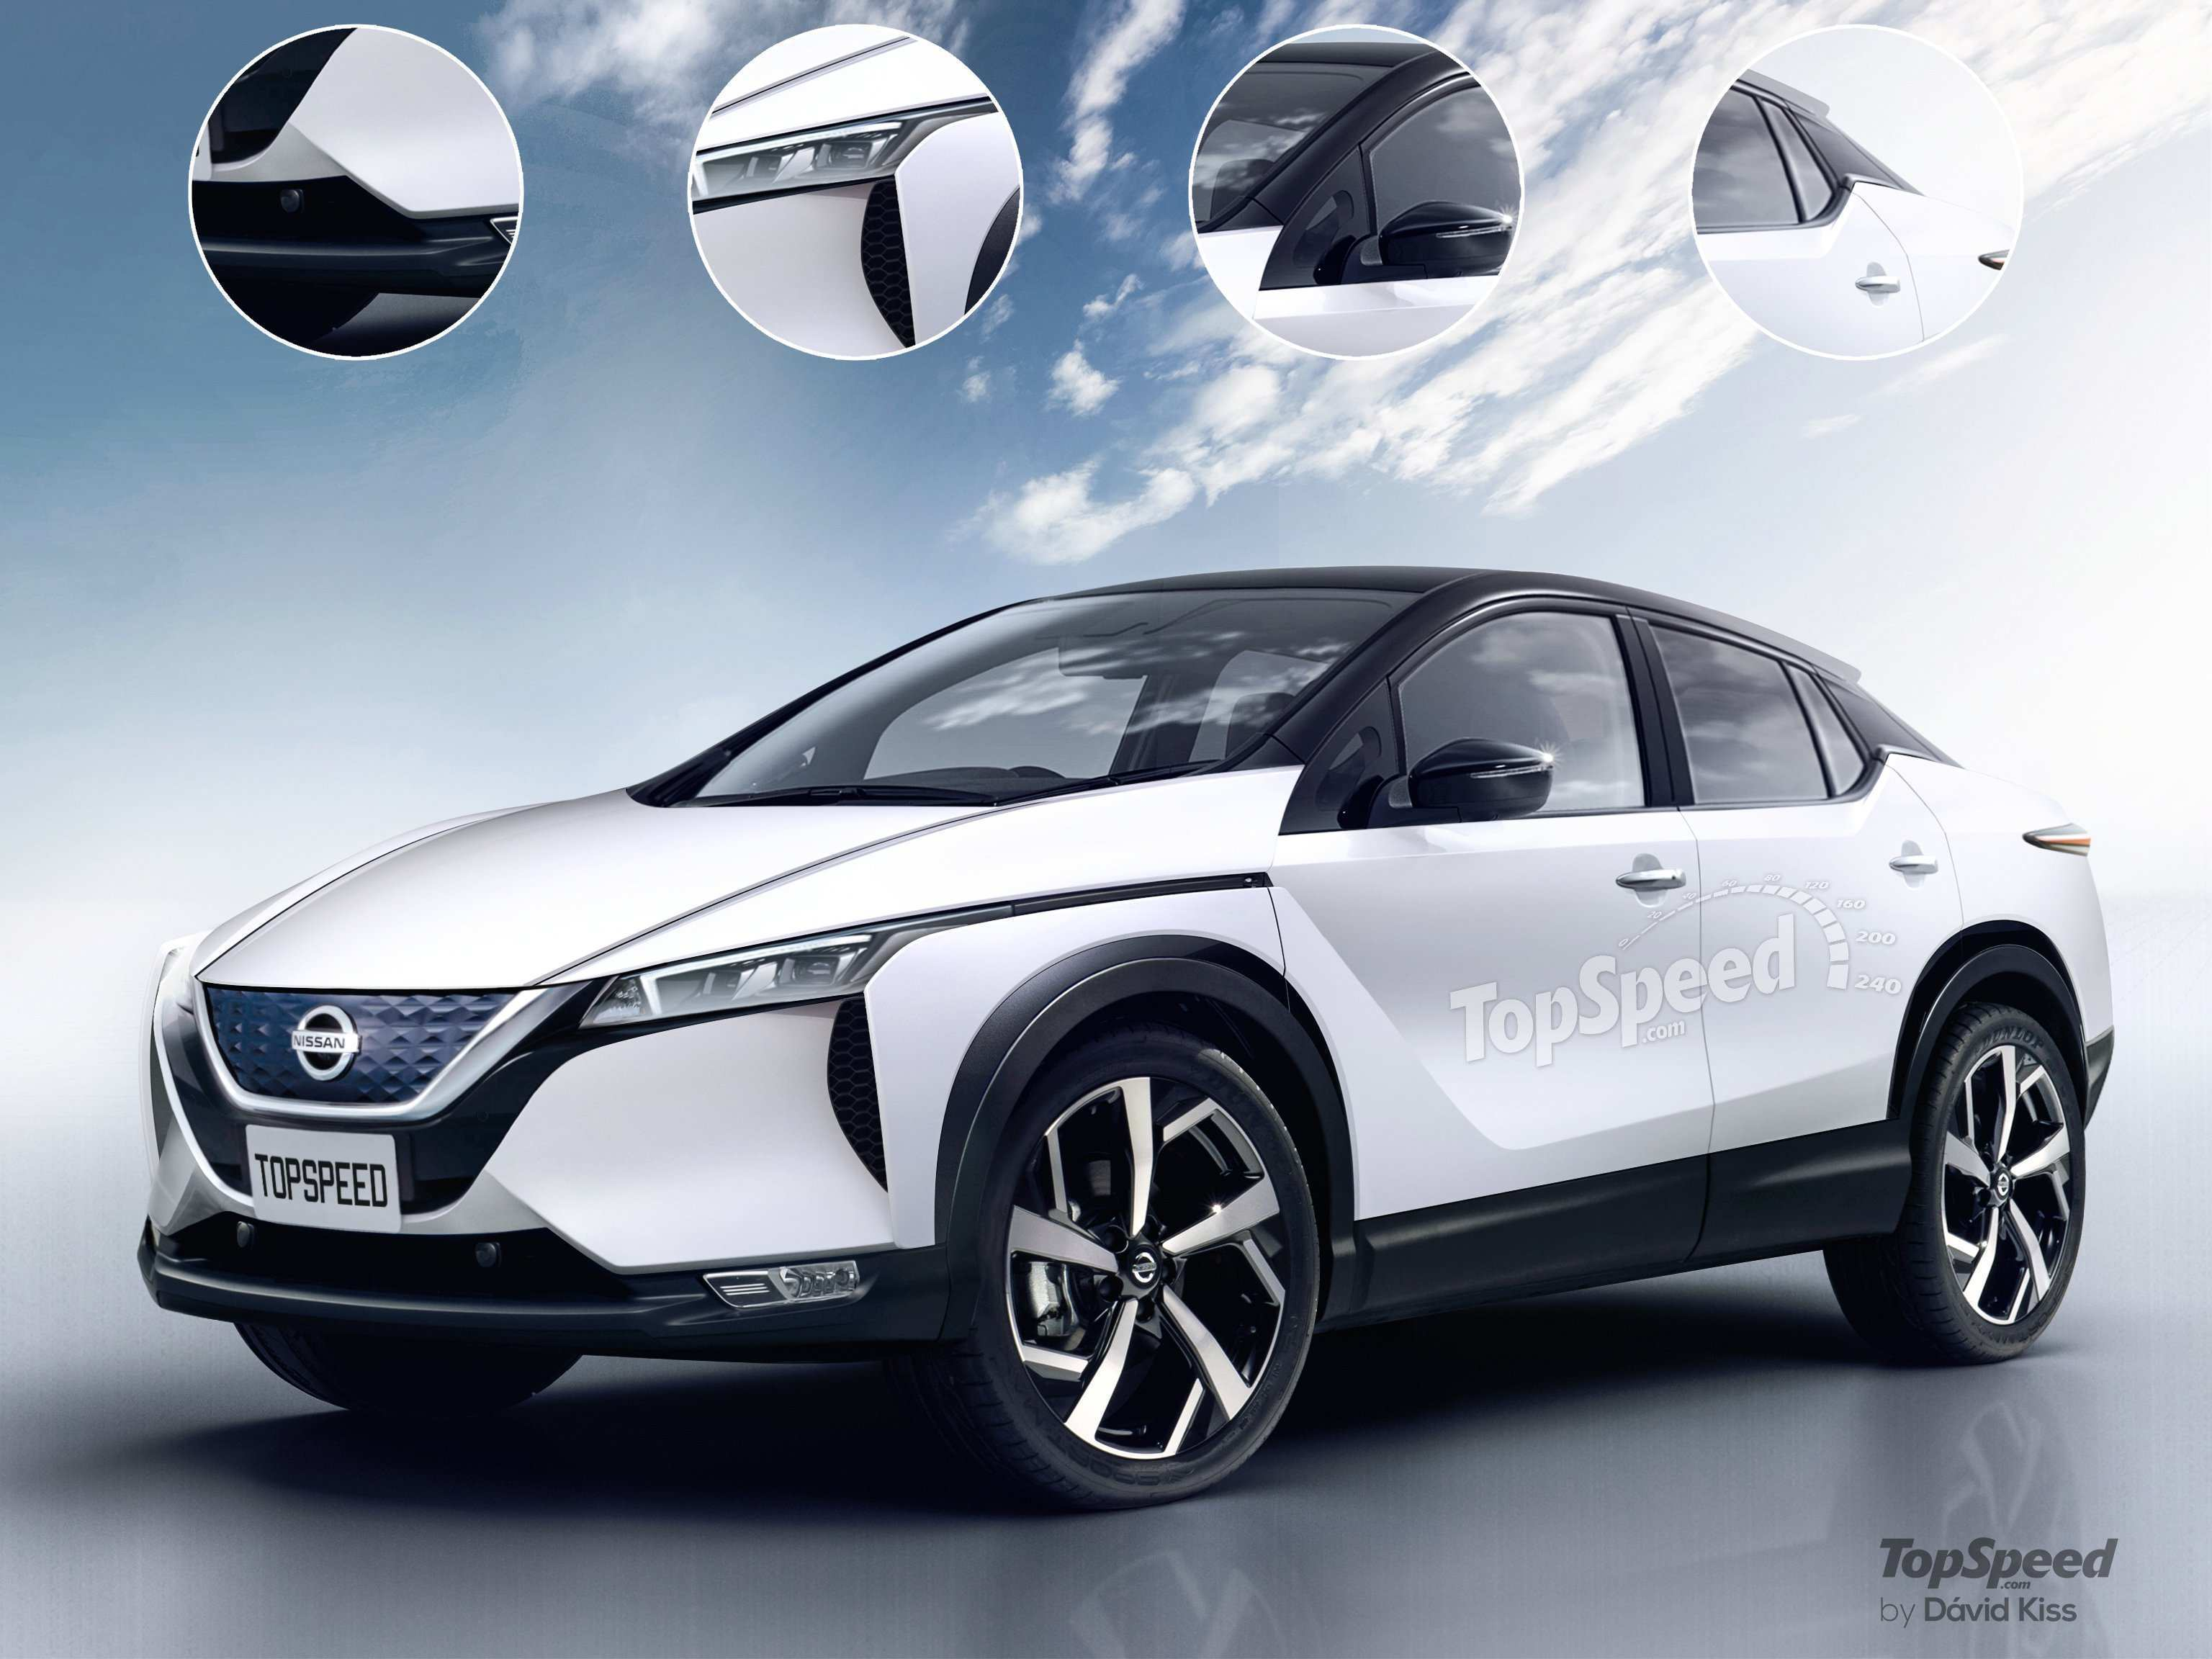 61 Concept of 2020 Nissan Leaf Range Configurations by 2020 Nissan Leaf Range